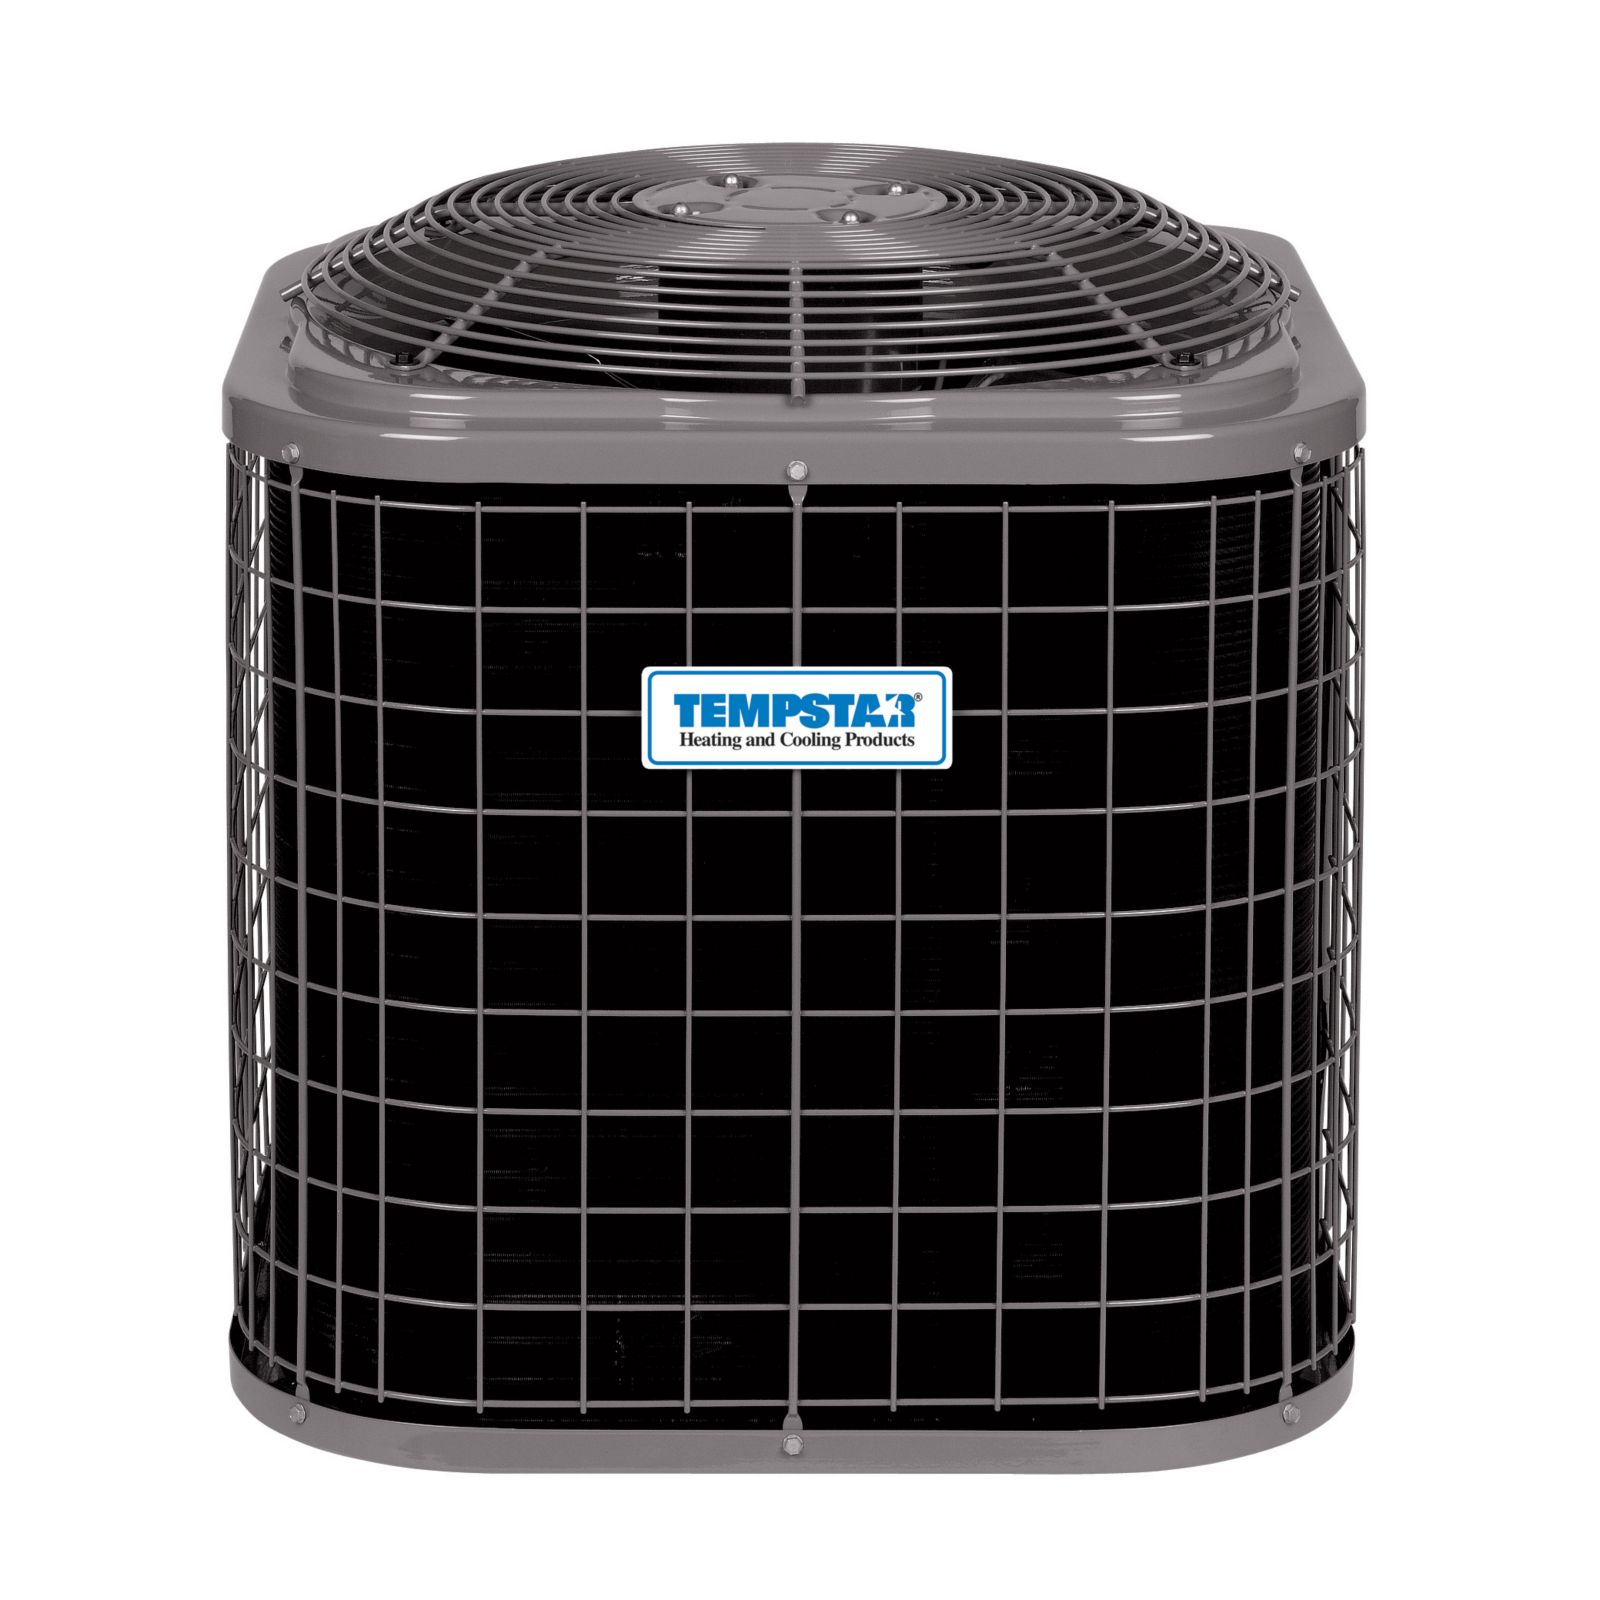 Tempstar NXA661GKA - 5 Ton, 16 SEER, R410A Air Conditioner With Coil Guard Grille, 208/230-1-60